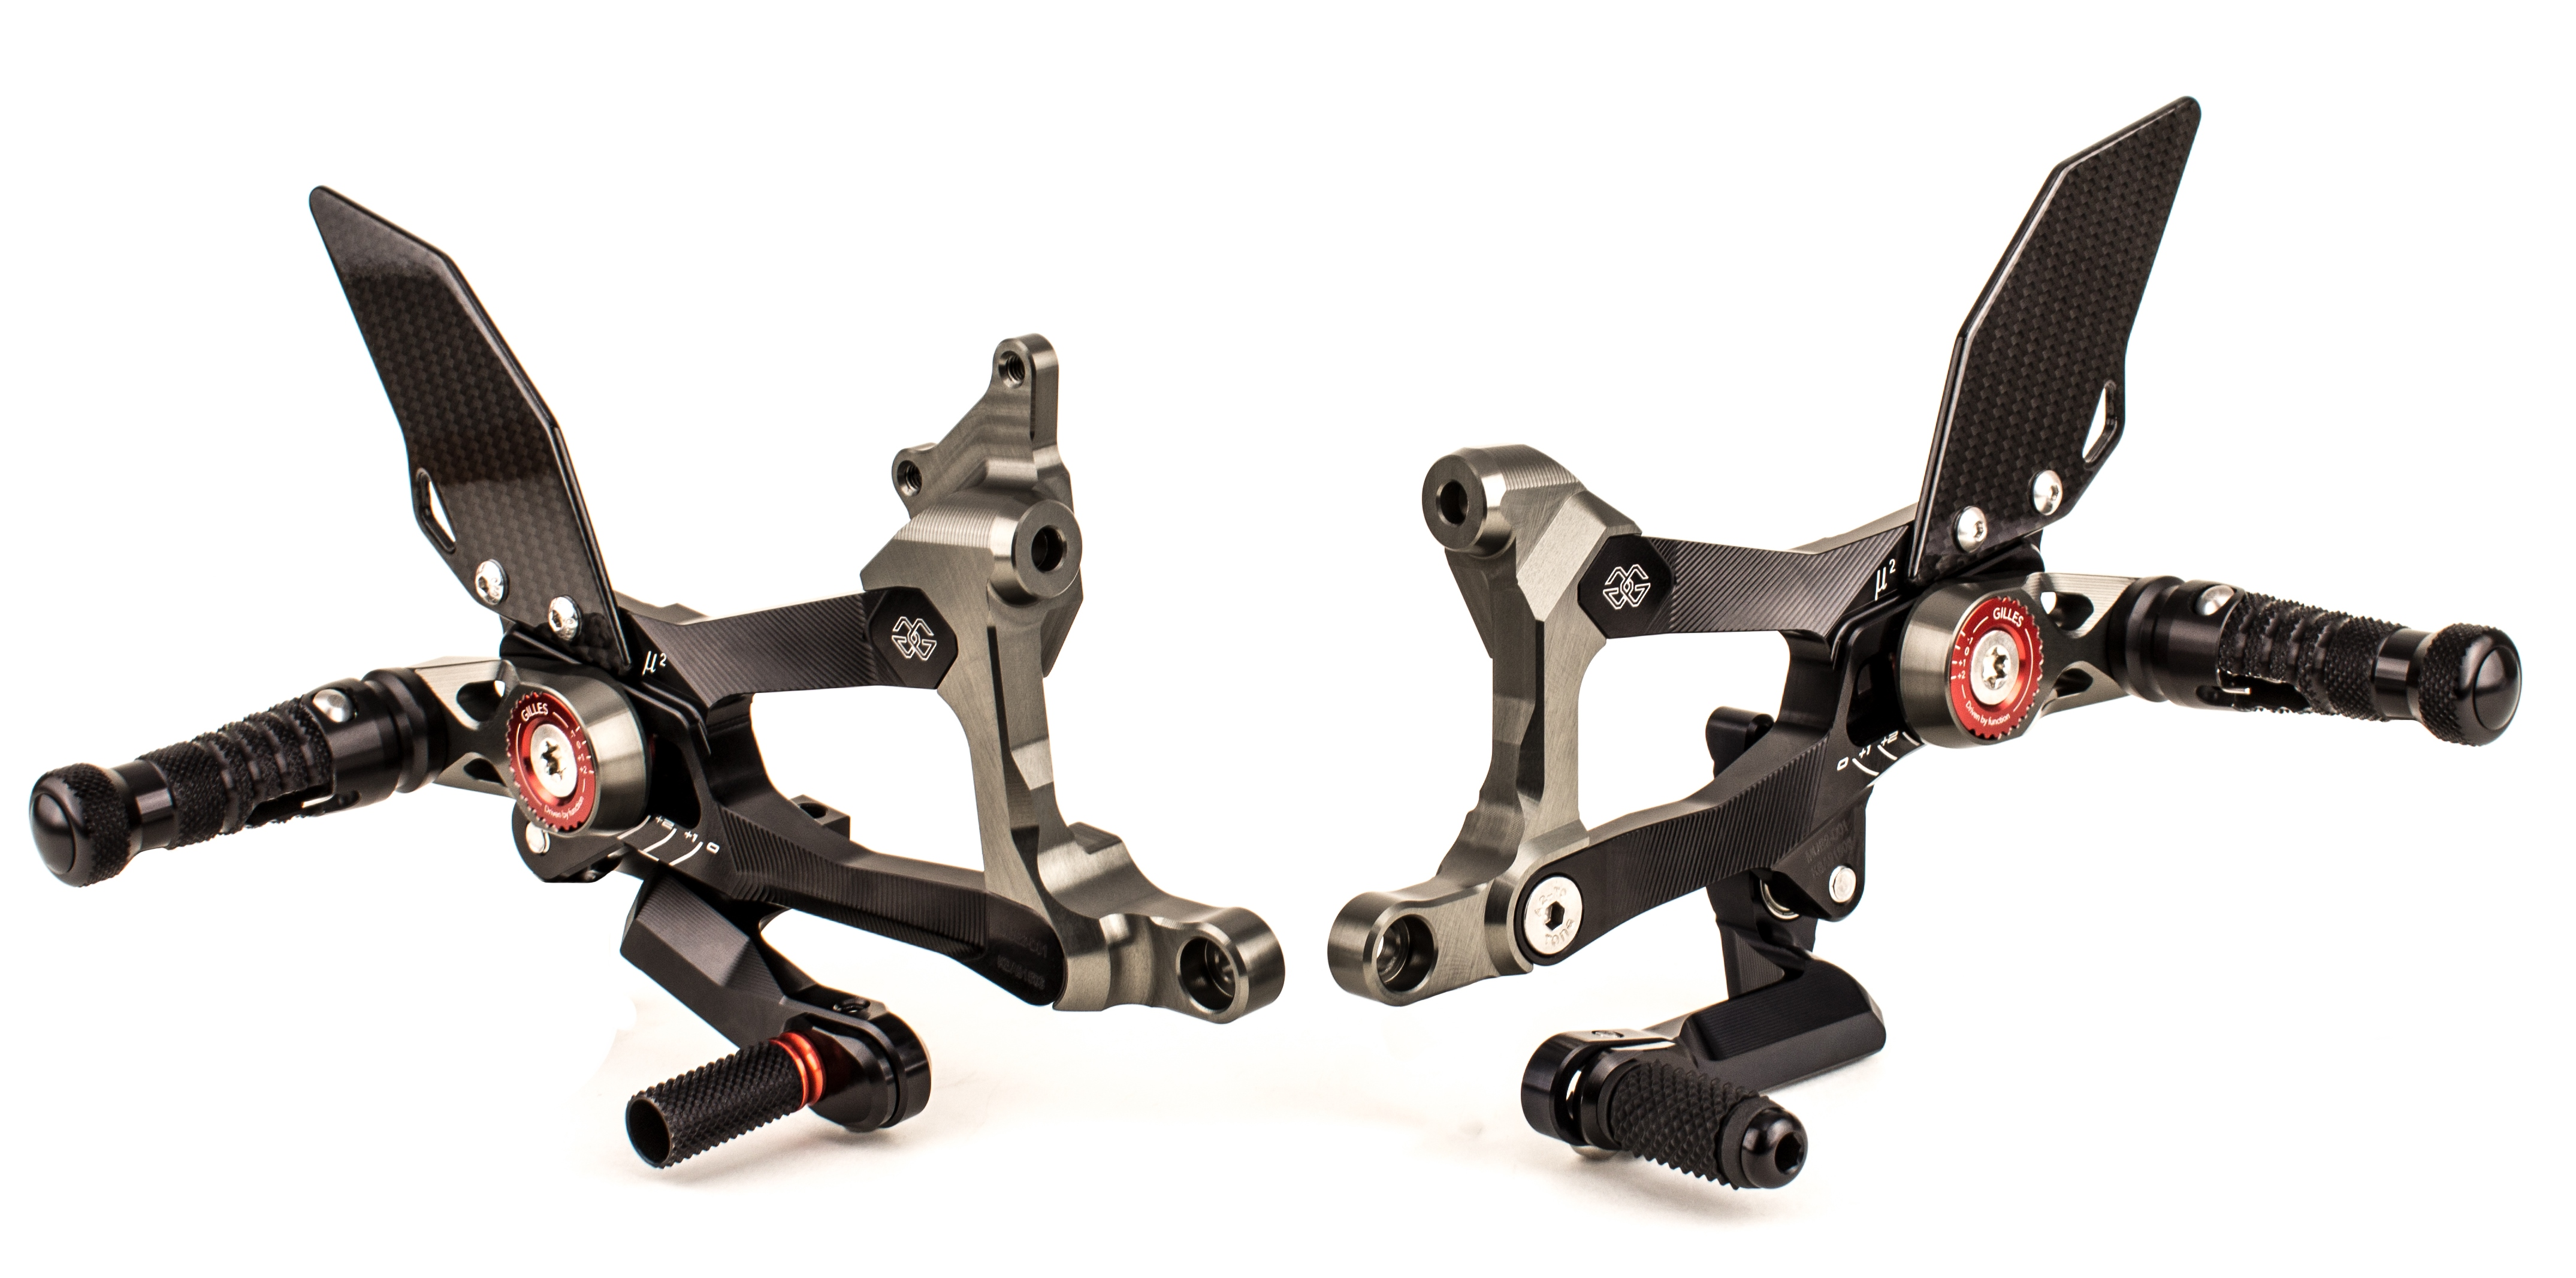 Gilles MUE2 Rearsets for Ducati Panigale V4 / S / Speciale (2018+)